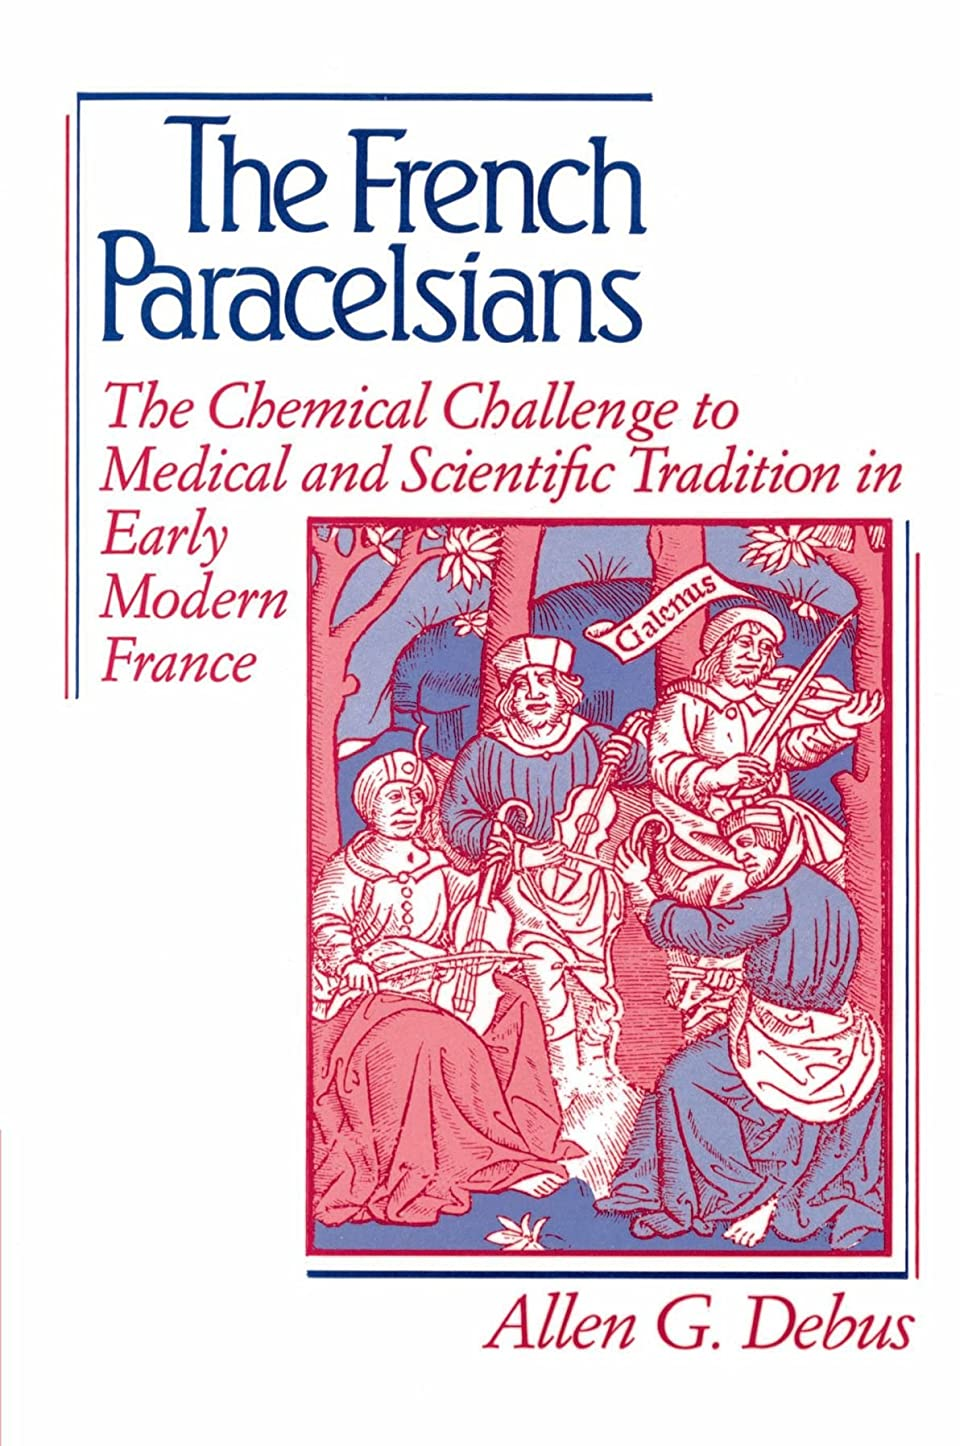 純正構想する成熟したThe French Paracelsians: The Chemical Challenge to Medical and Scientific Tradition in Early Modern France